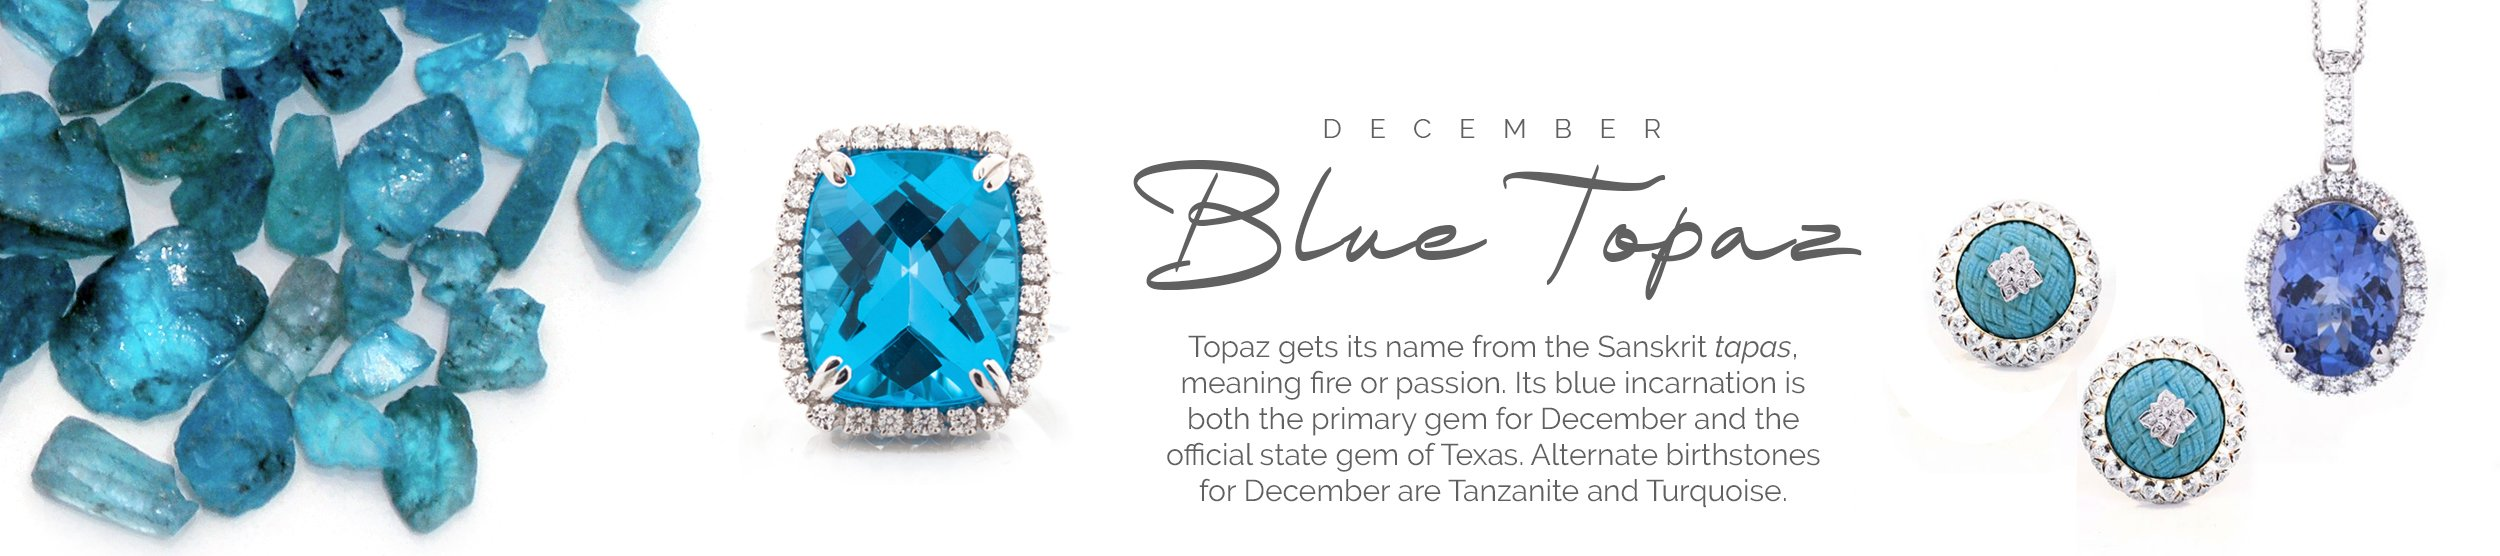 December Birthstone: Tanzanite/Turquoise/Blue Topaz - By Price: Lowest to Highest